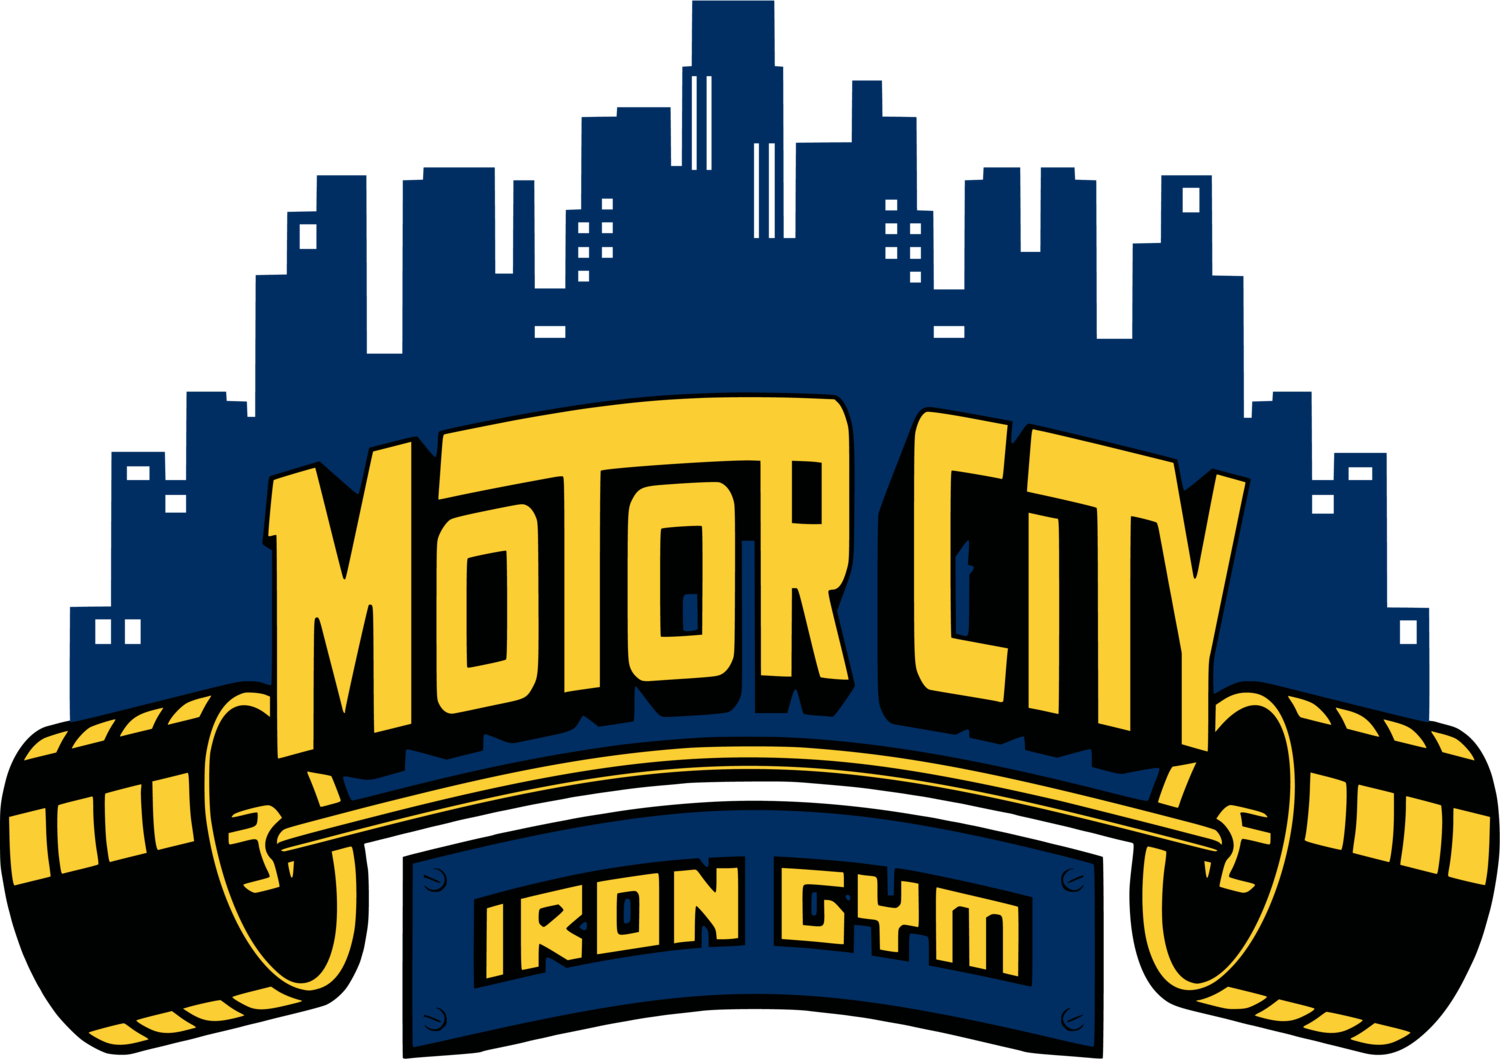 Motor City Iron Gym